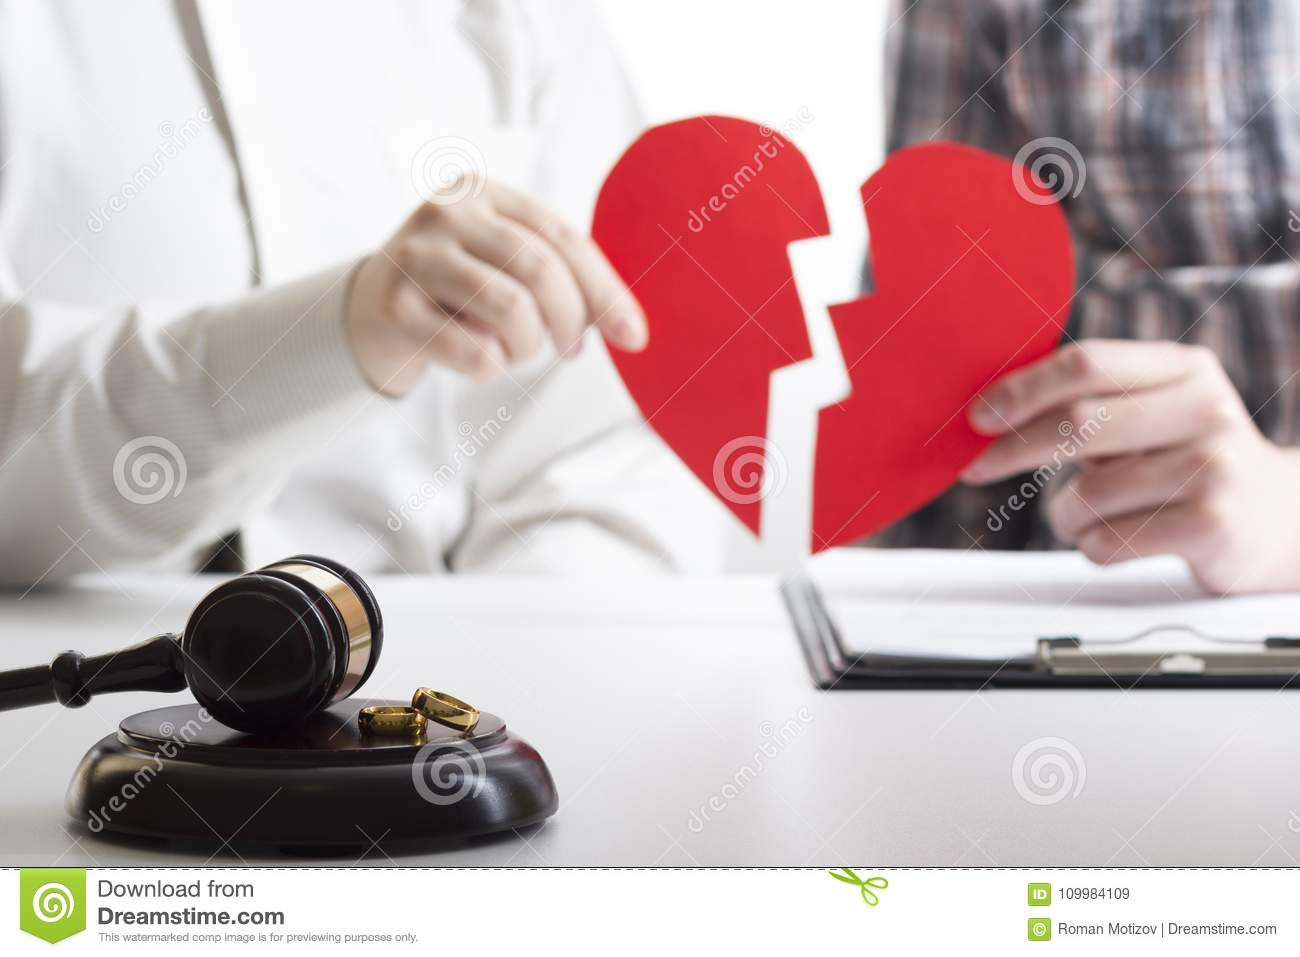 Hands of wife, husband signing decree of divorce, dissolution, canceling marriage, legal separation documents, filing